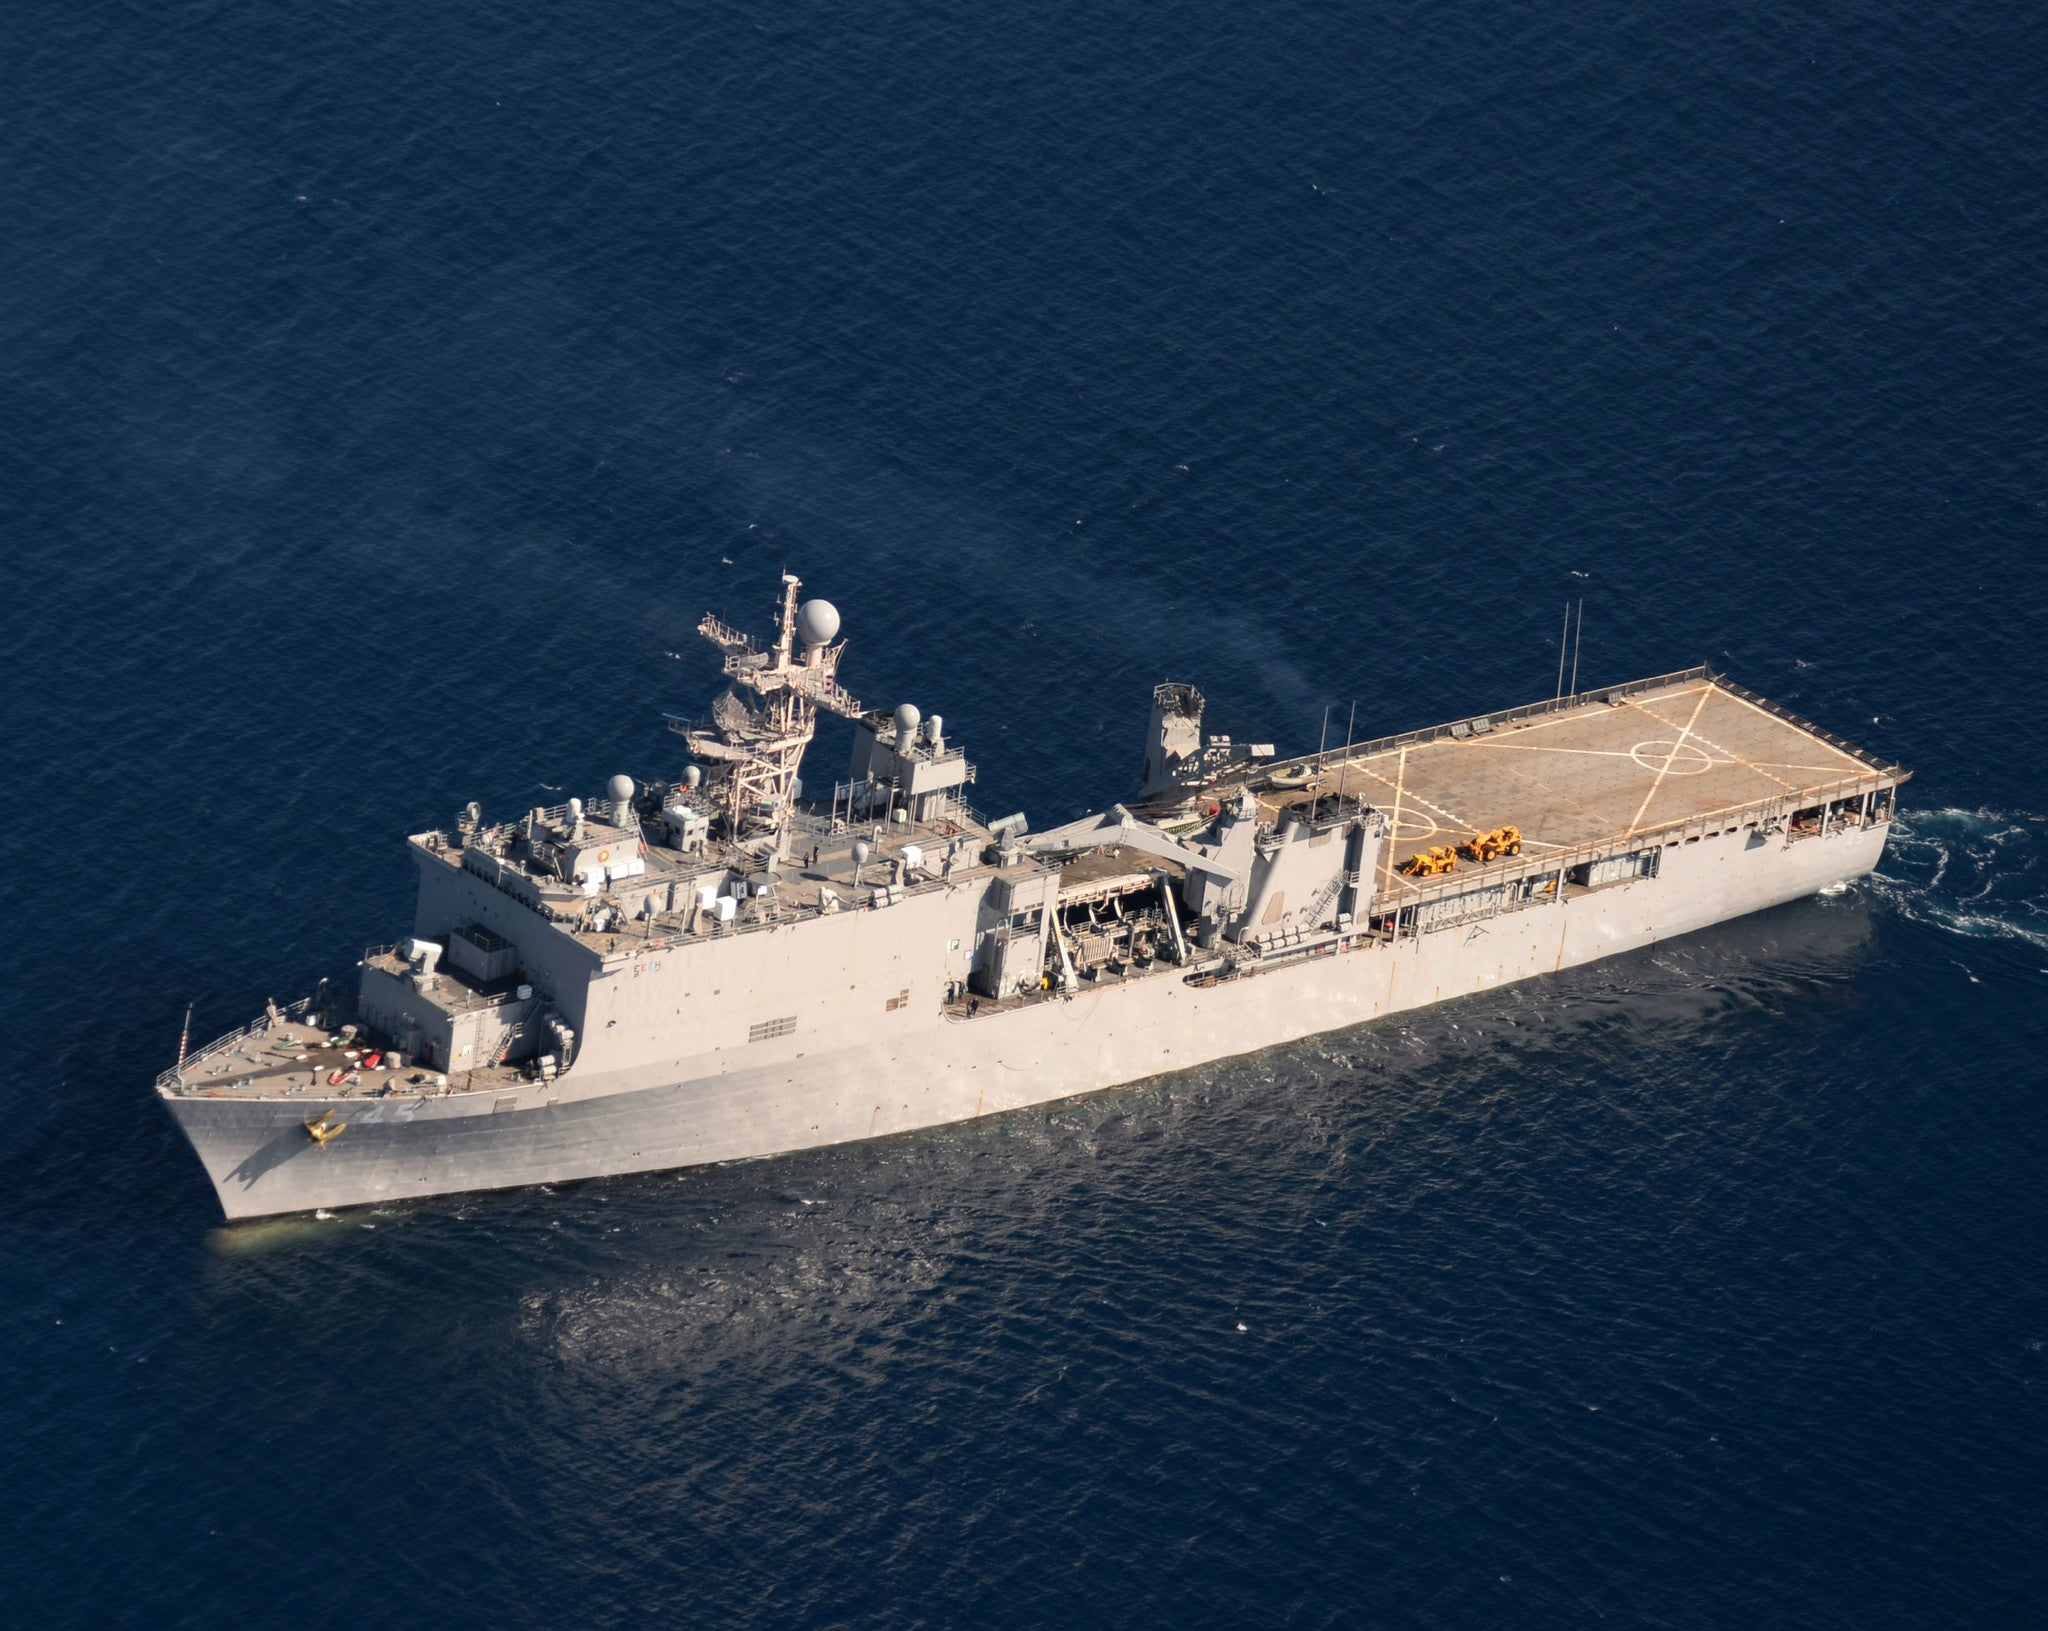 "Landing Ship, Dock USS Comstock Pacific Ocean March 13, 2014 - 8 x 10"" Photograph"